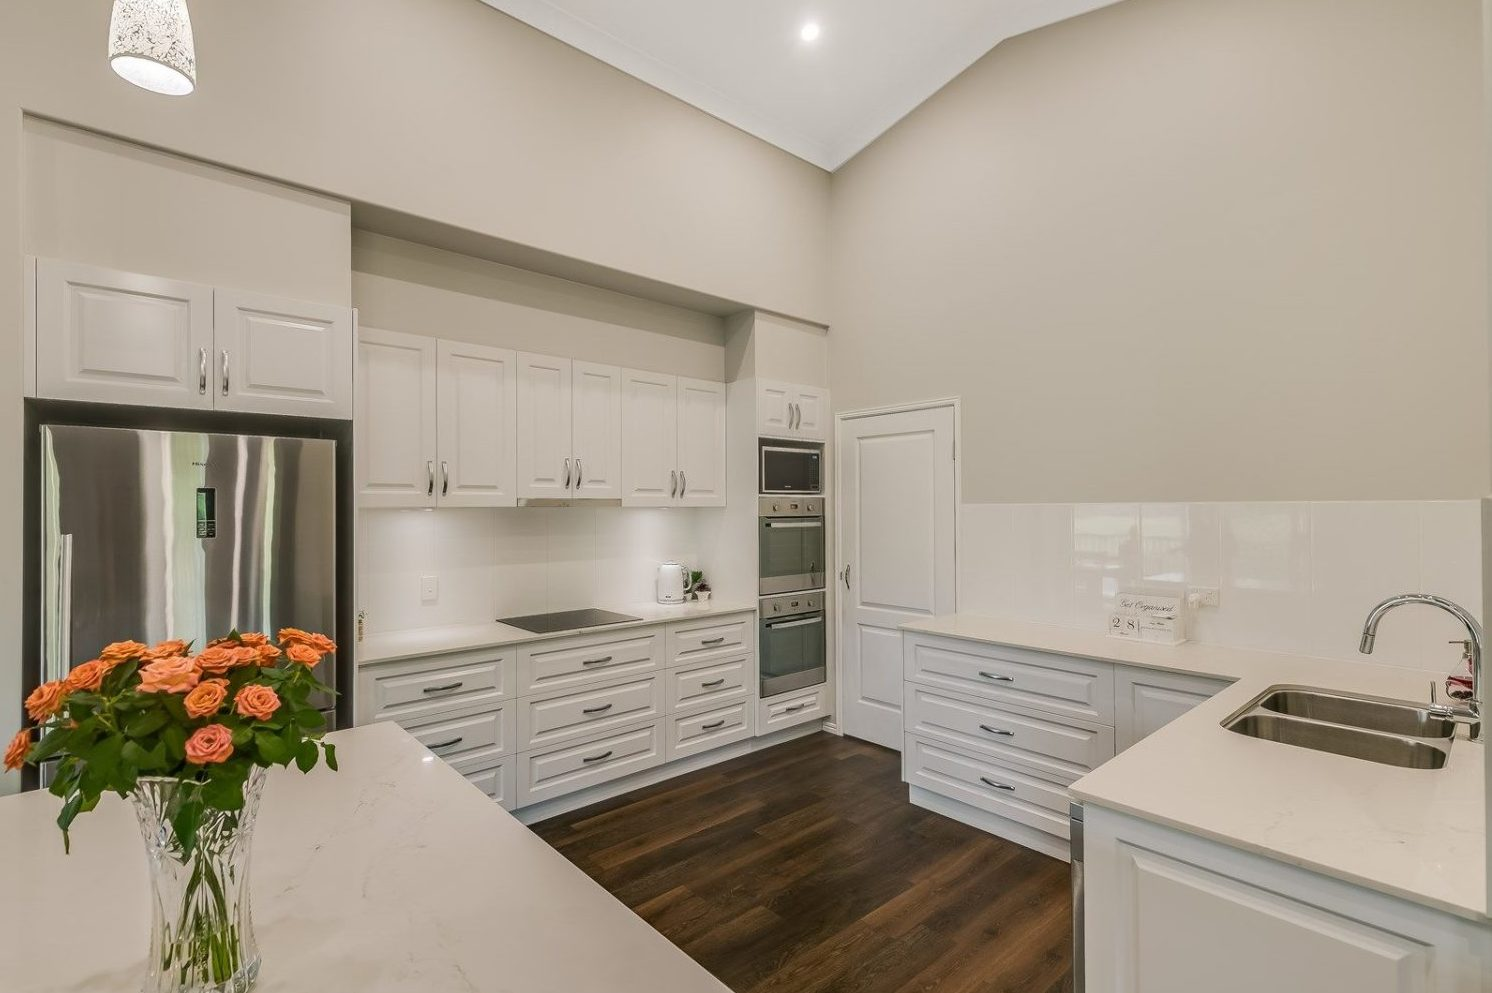 Martin Fallon Family Homes New Home Builders The Stump Home Experts Home Kitchens